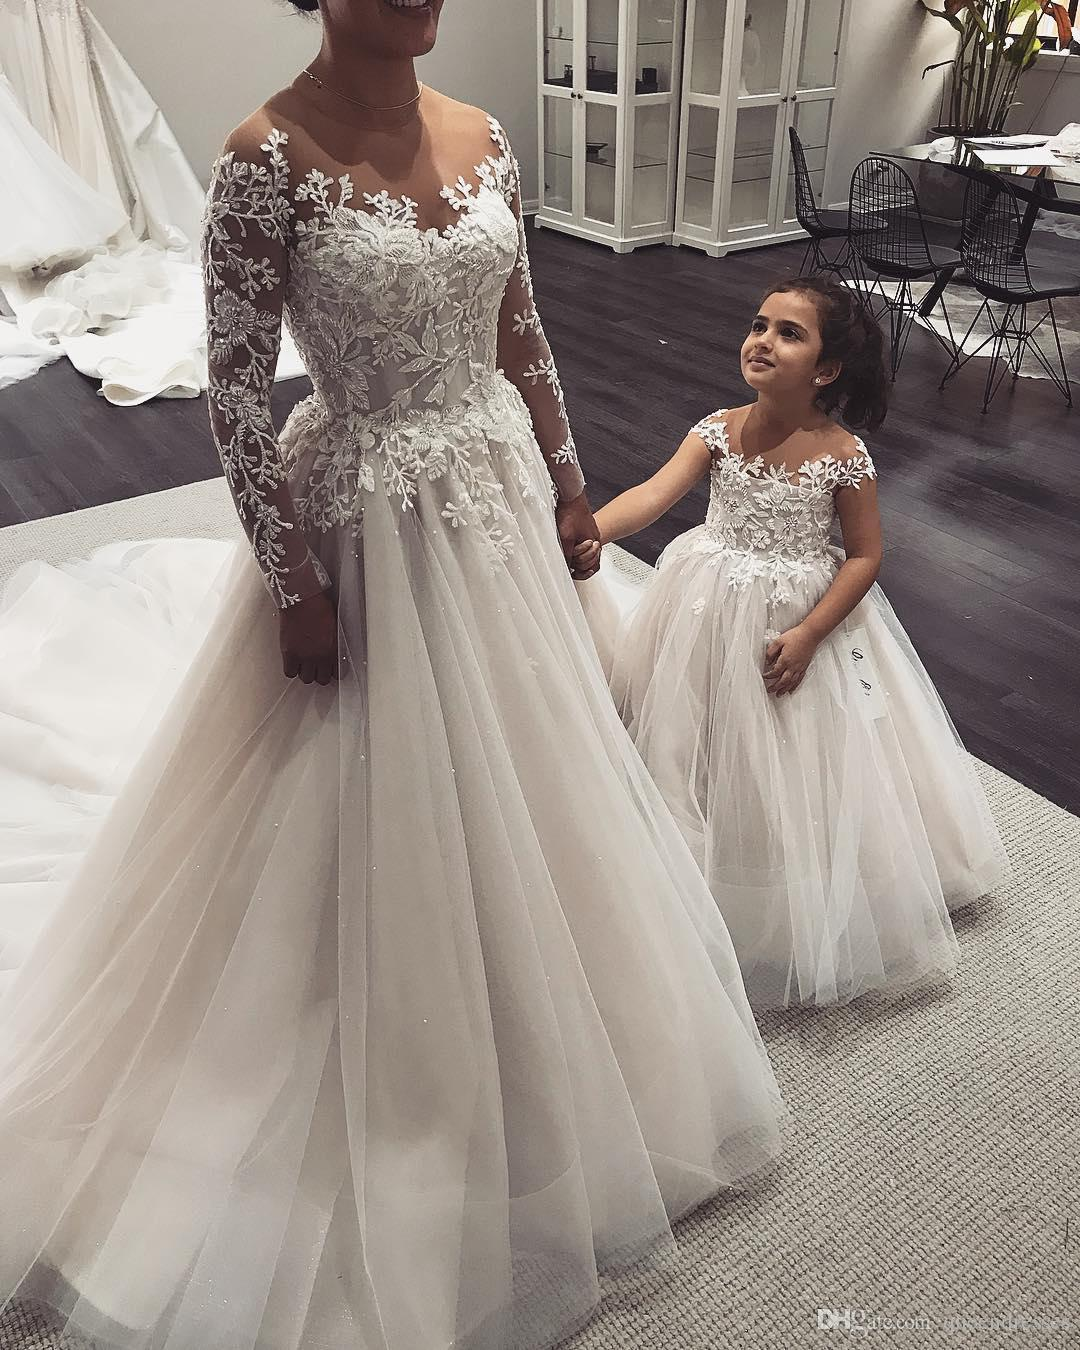 Luxury White Wedding Gowns With Lace Long Sleeve Jewel Beaded A Line Wedding Gowns Bridal Dresses Chapel Train Tulle Brautkleider Kaufen